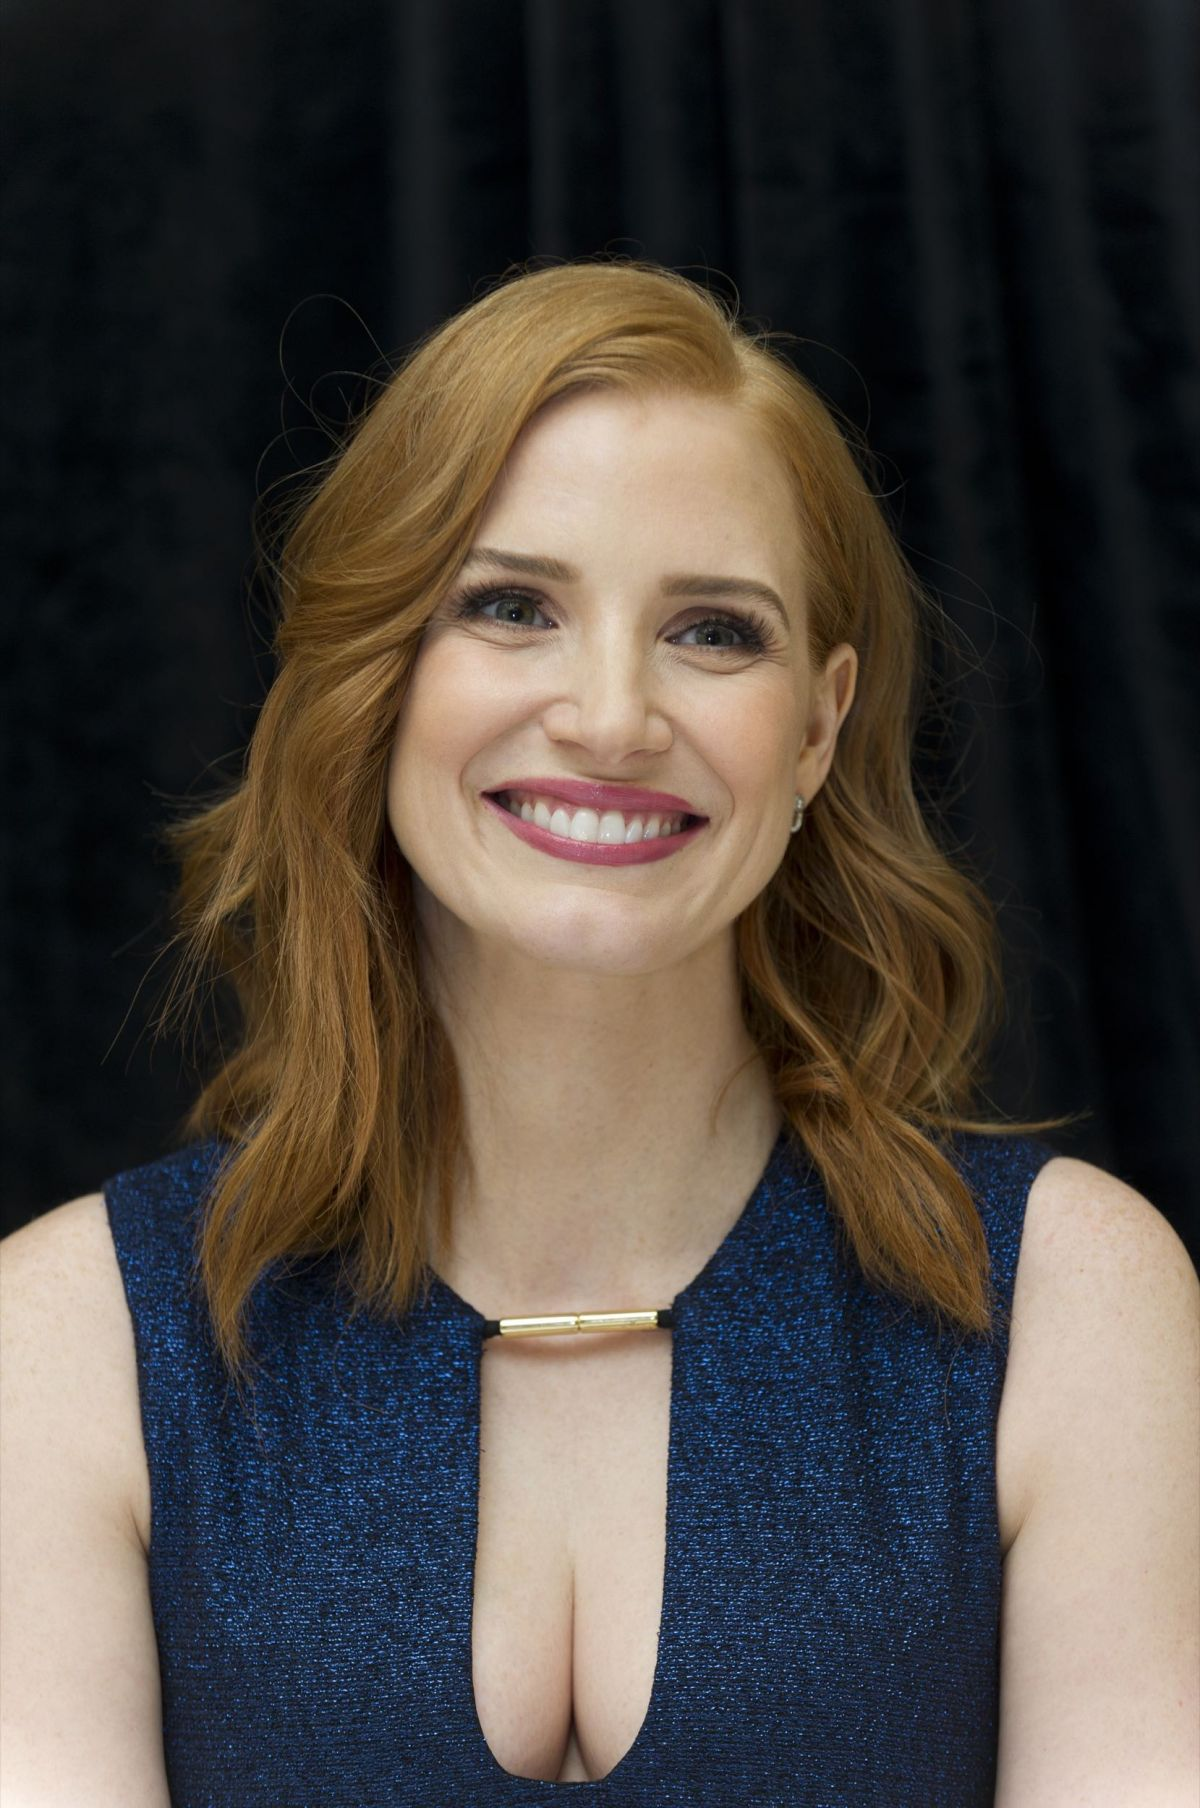 JESSICA CHASTAIN at Th... Jessica Chastain